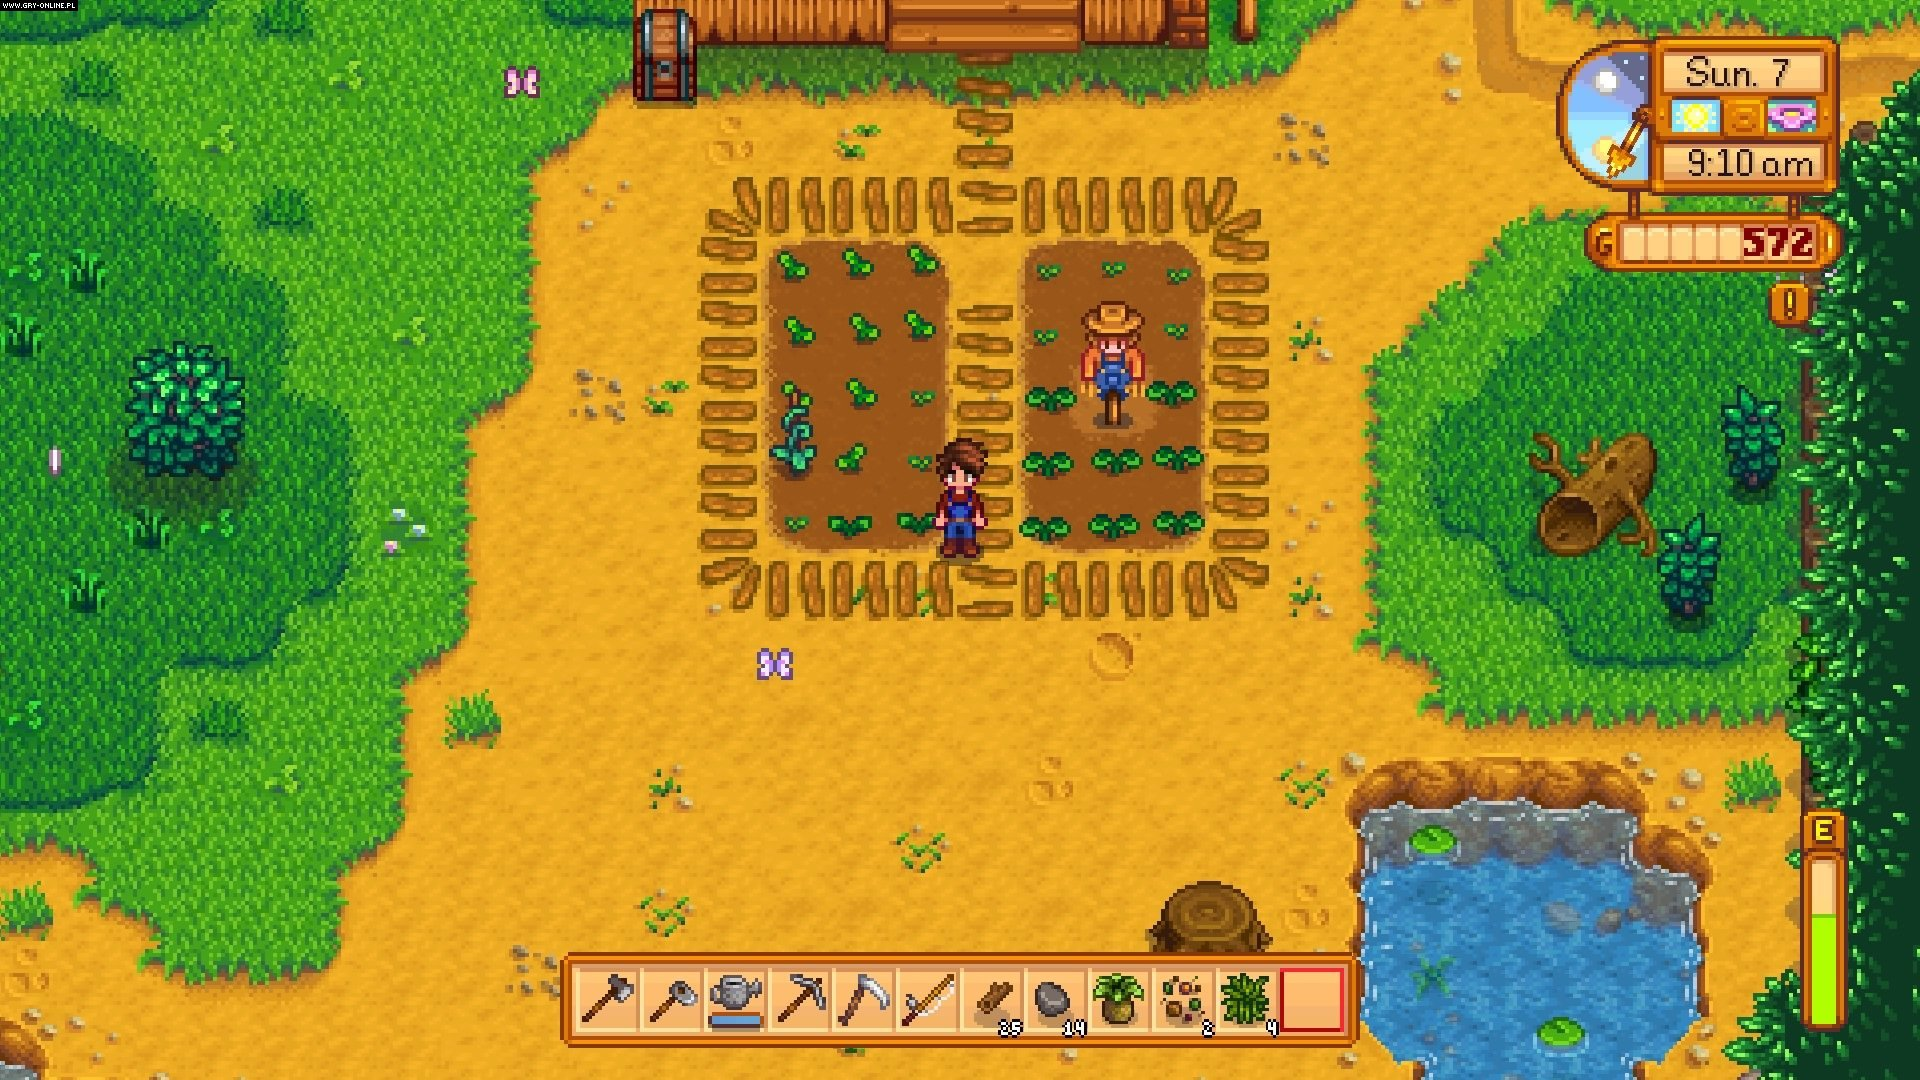 Stardew Valley PC, PSV, PS4, XONE, Switch Gry Screen 6/28, Concerned Ape, Chucklefish